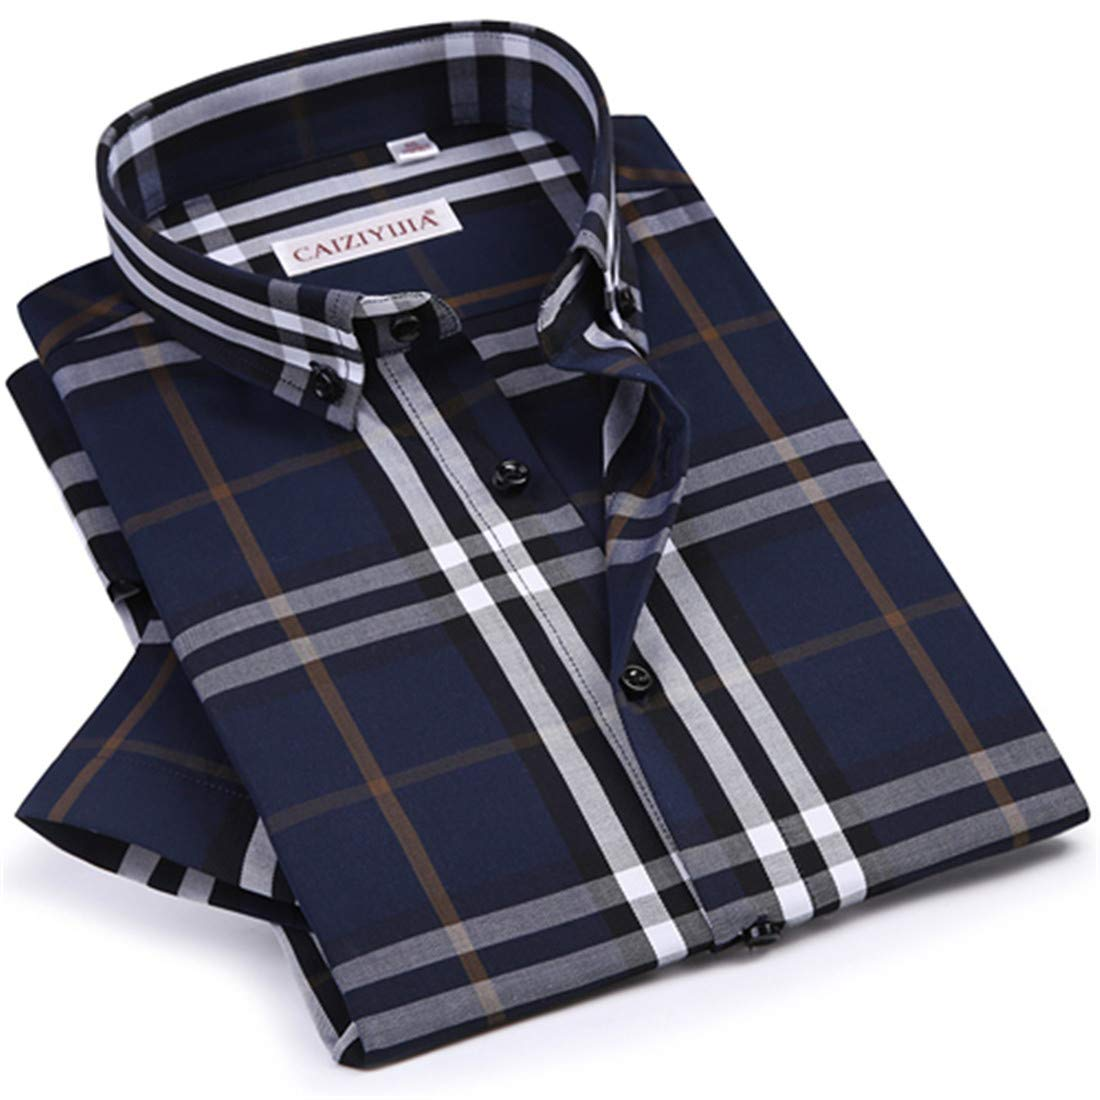 Mens Casual Checkered Plaid Dress Shirt Worn in Comfortable Stylish